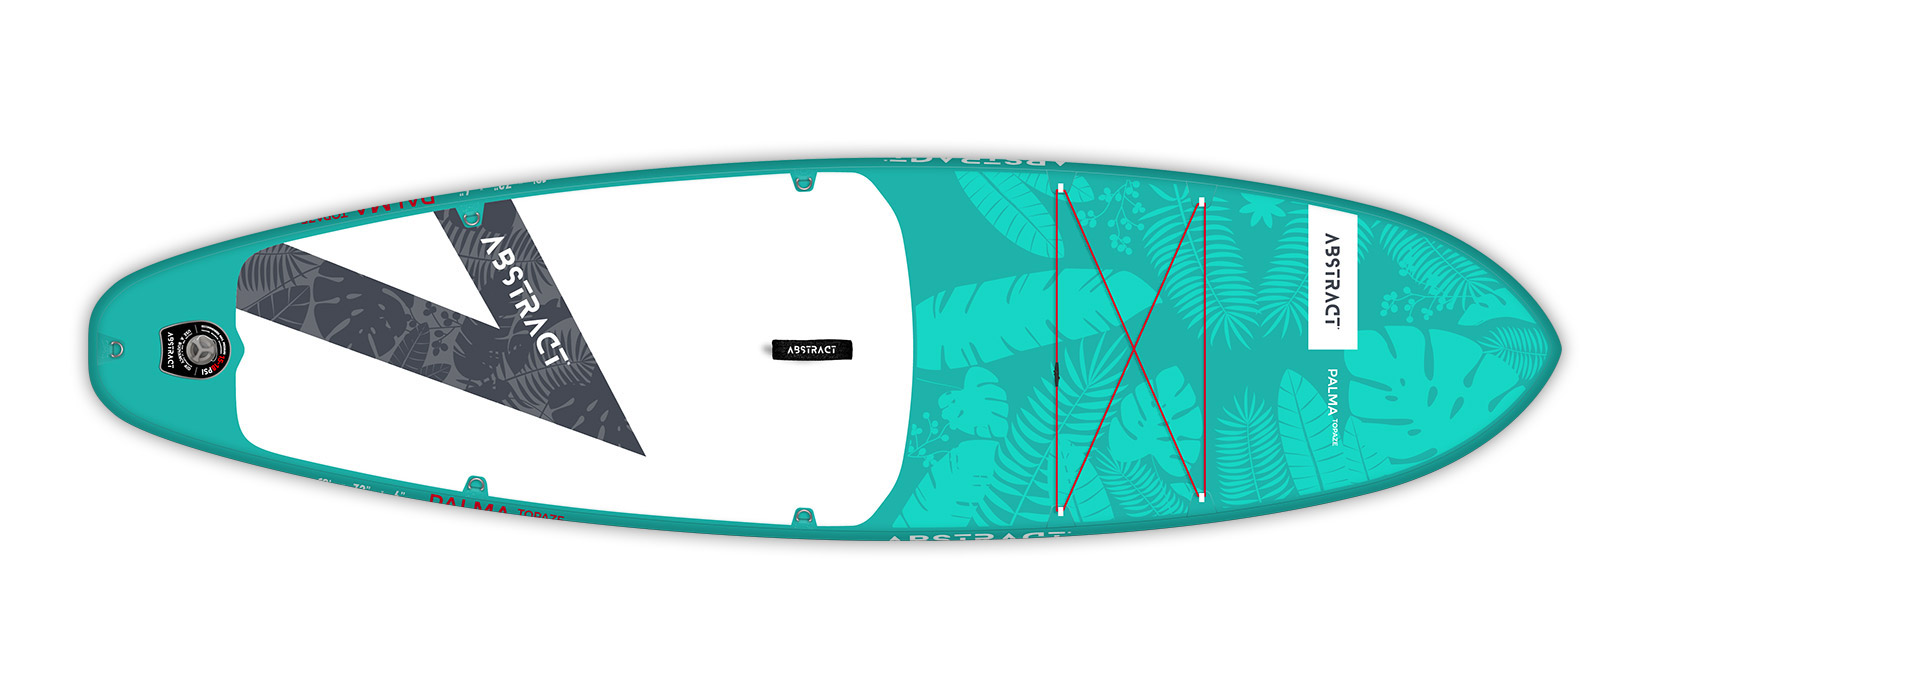 Planche de paddle Board gonflable Palma Topaze (Bleu) Abstract 2021